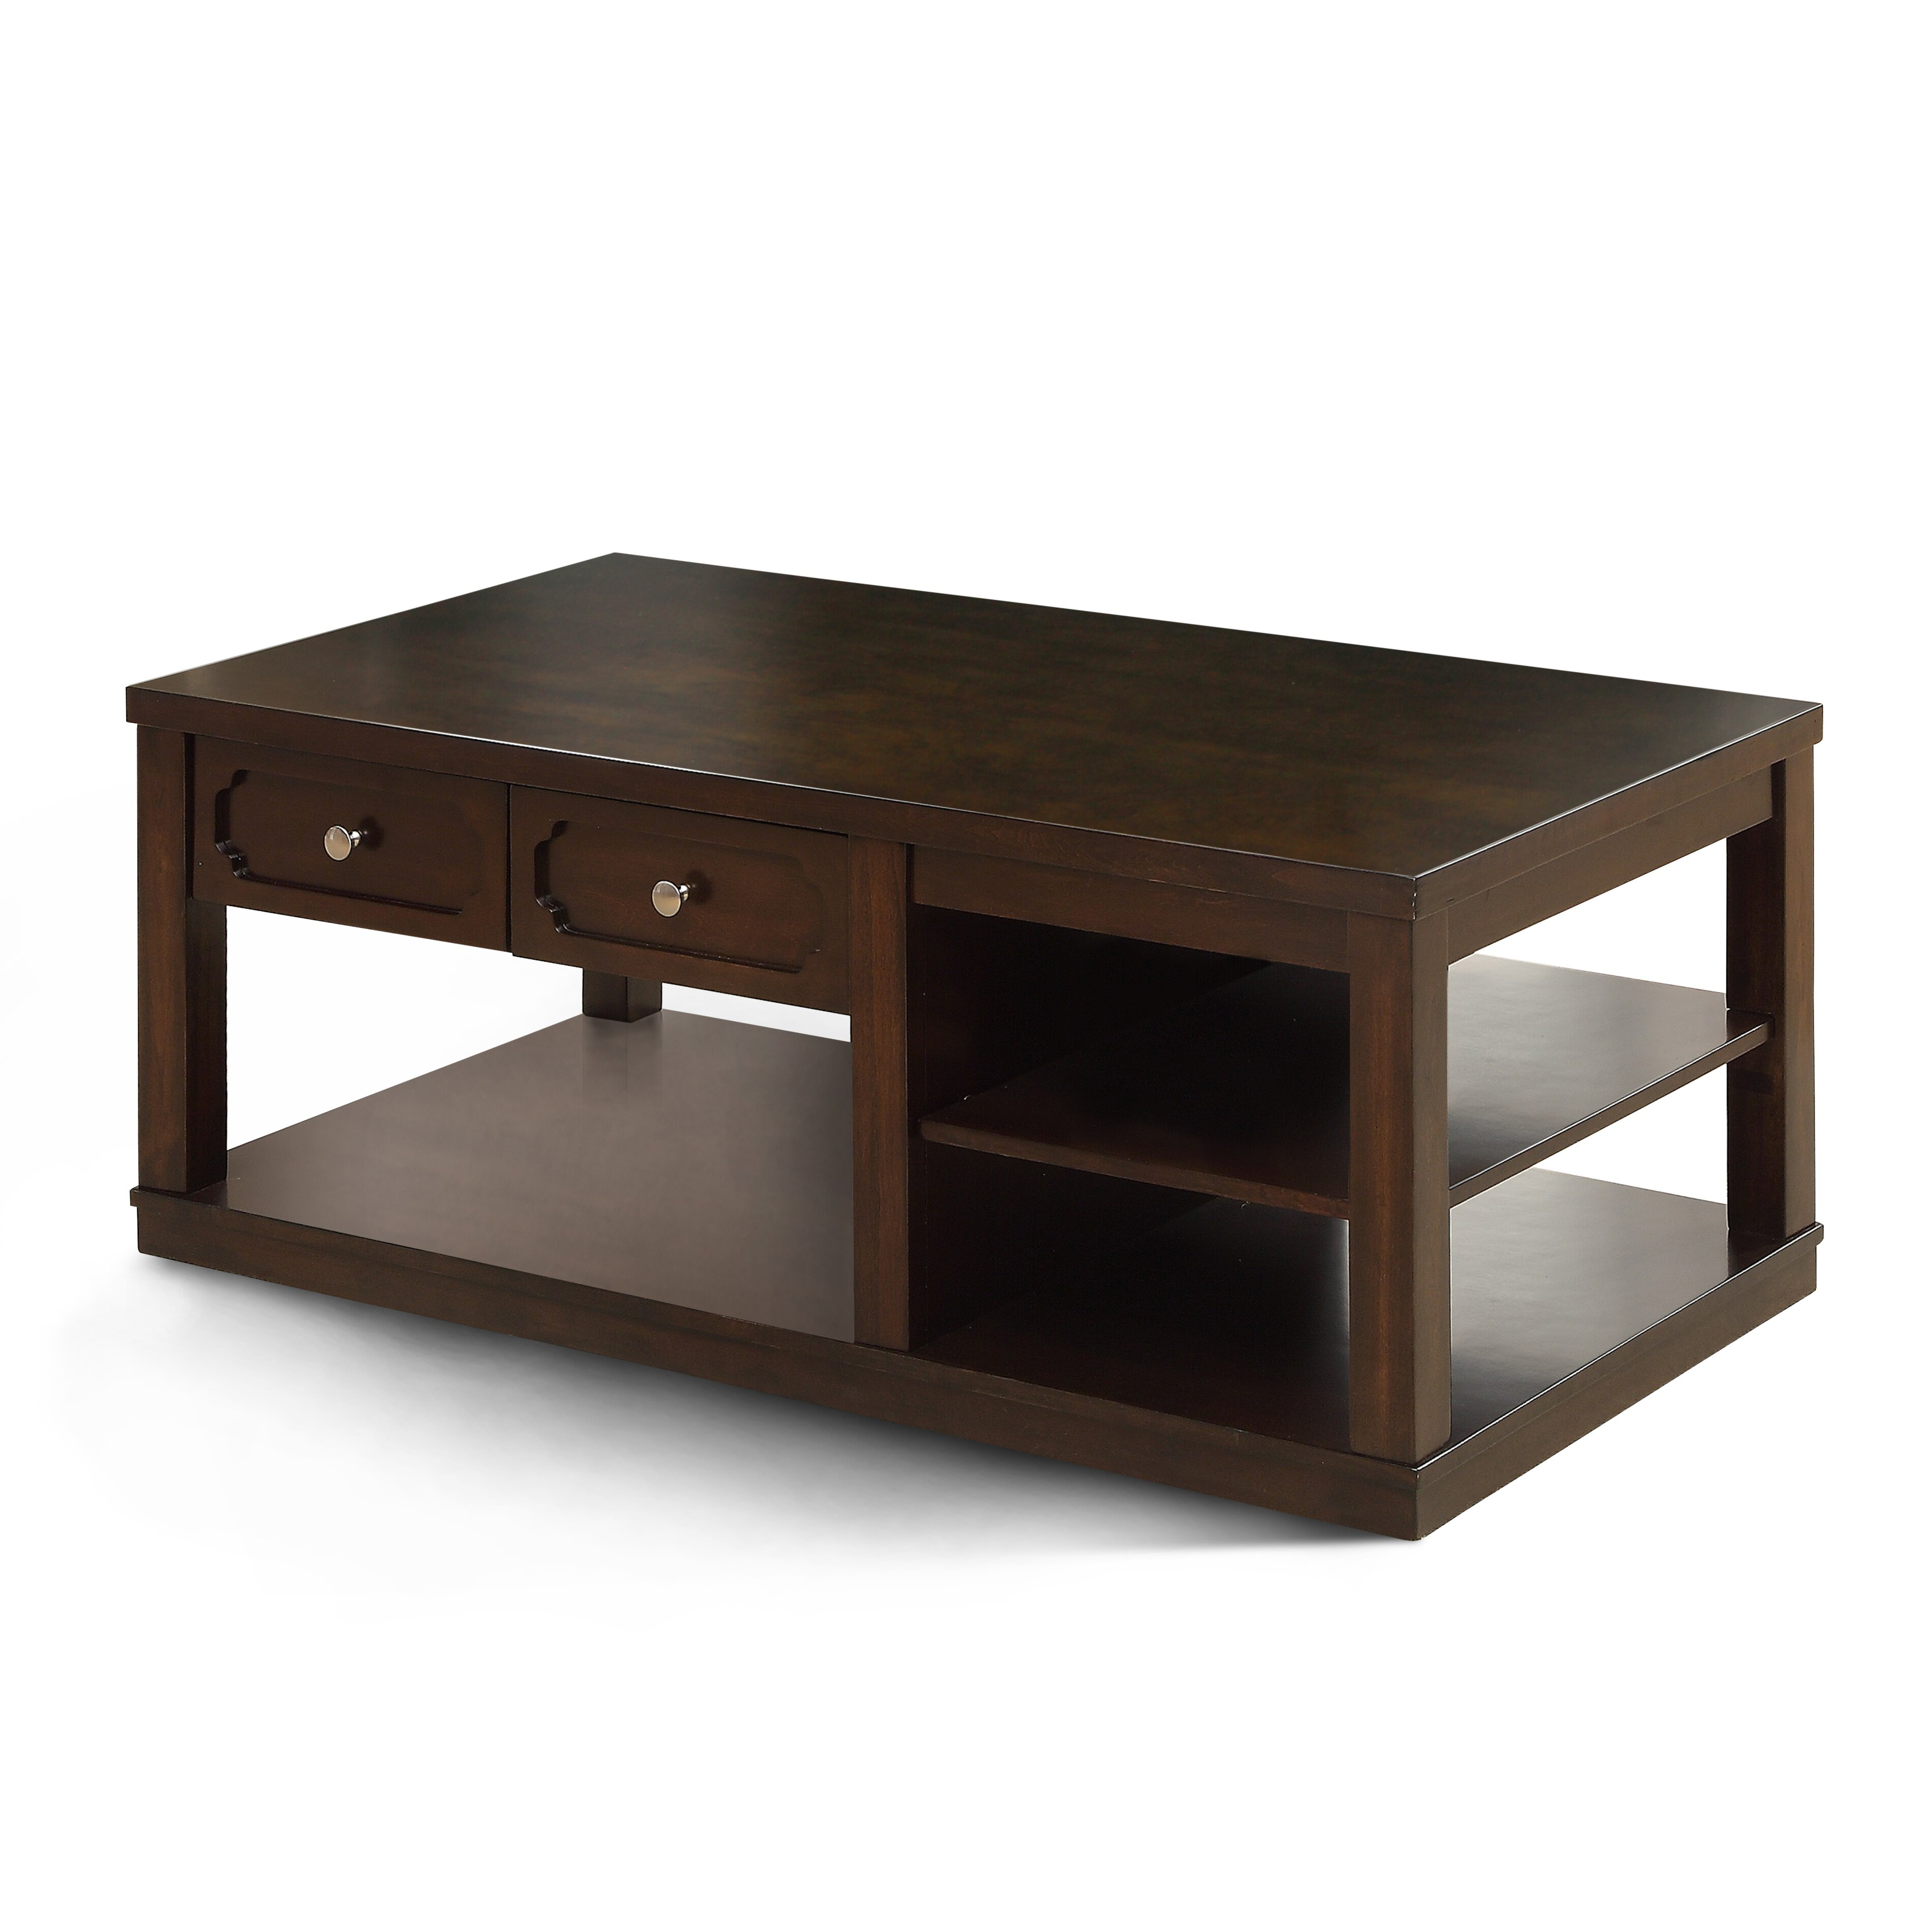 Hokku Designs Virotte Coffee Table Reviews Wayfair